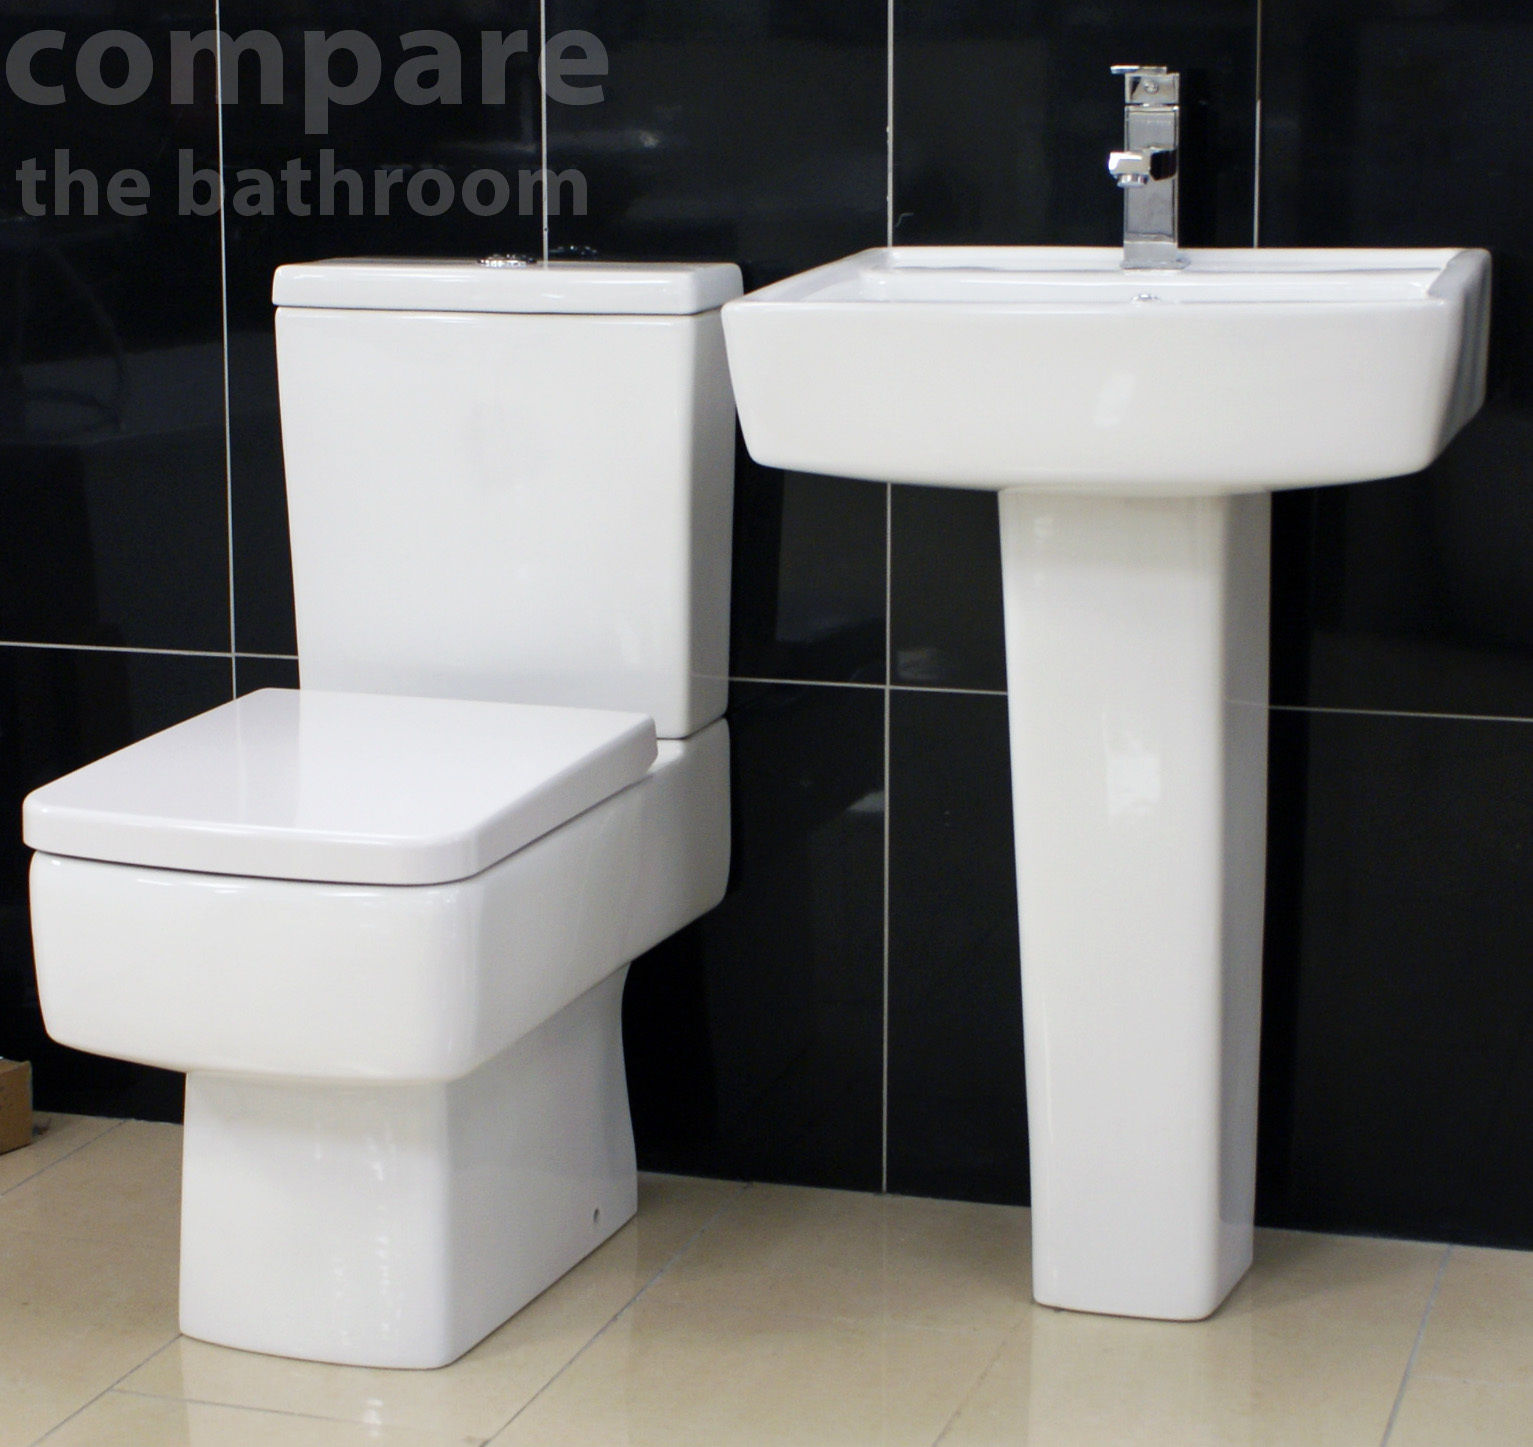 Diana art deco style bathroom suite basin sink toilet wc for Bath toilet and sink sets